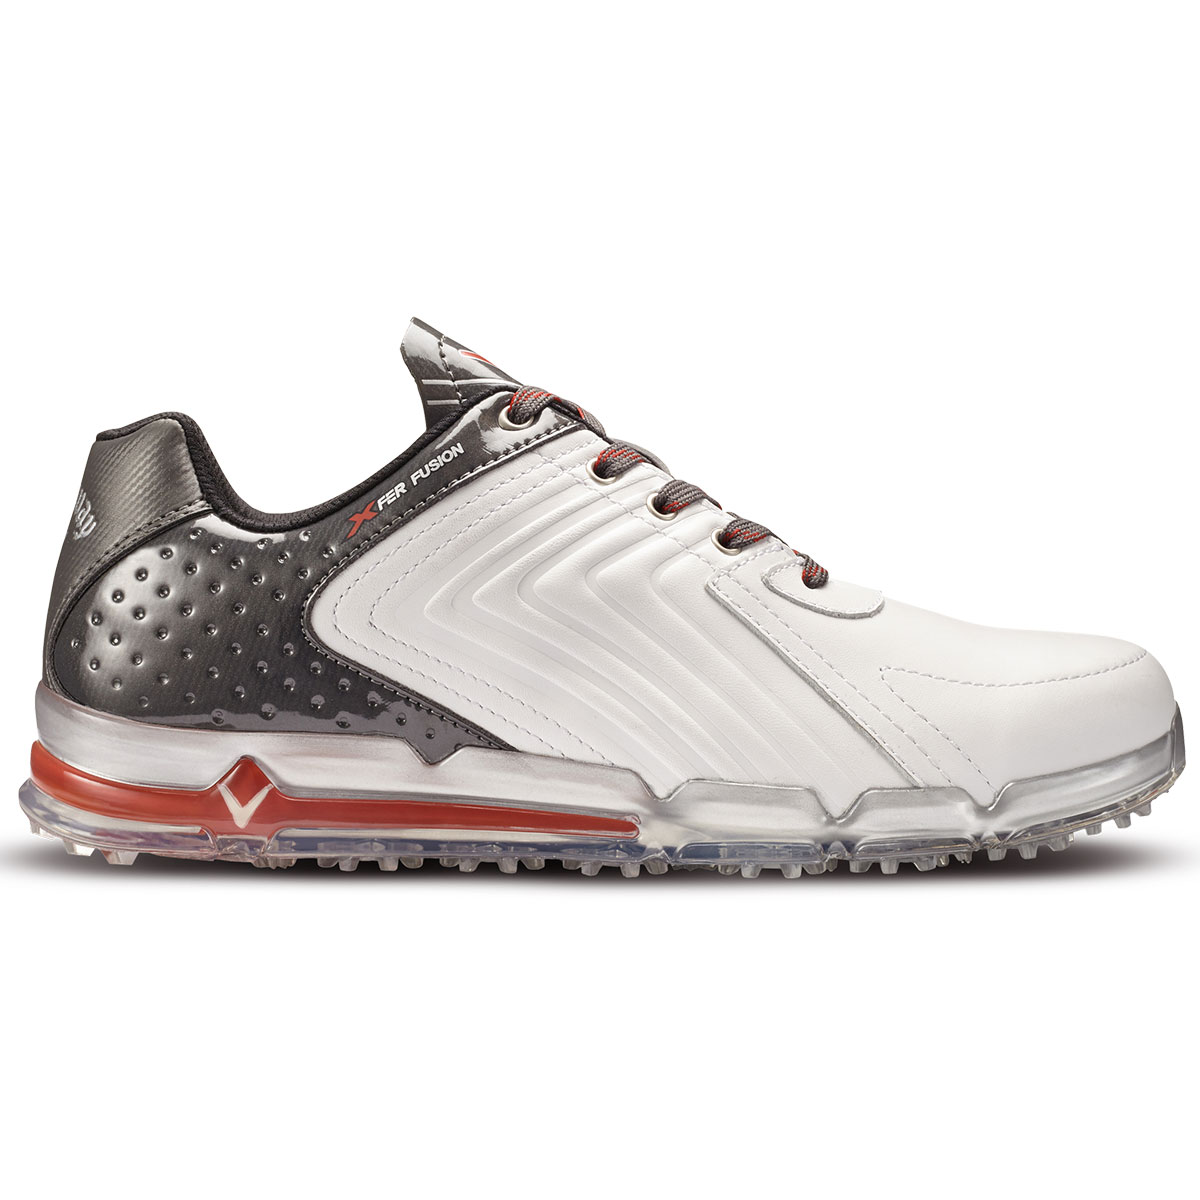 Nike Mens Golf Shoes Size